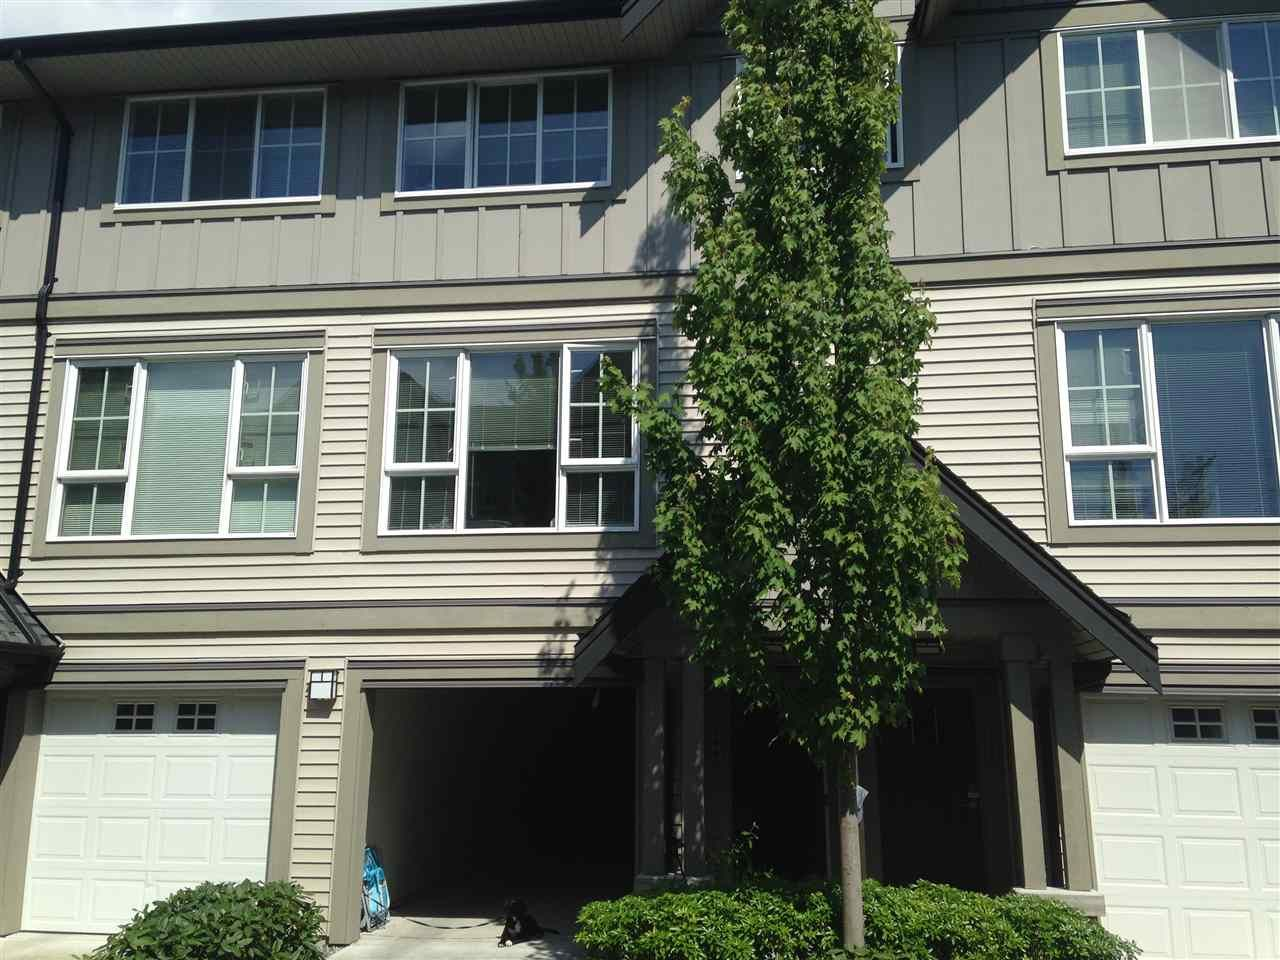 """Main Photo: 199 2501 161A Street in Surrey: Grandview Surrey Townhouse for sale in """"Highland Park"""" (South Surrey White Rock)  : MLS®# R2282870"""